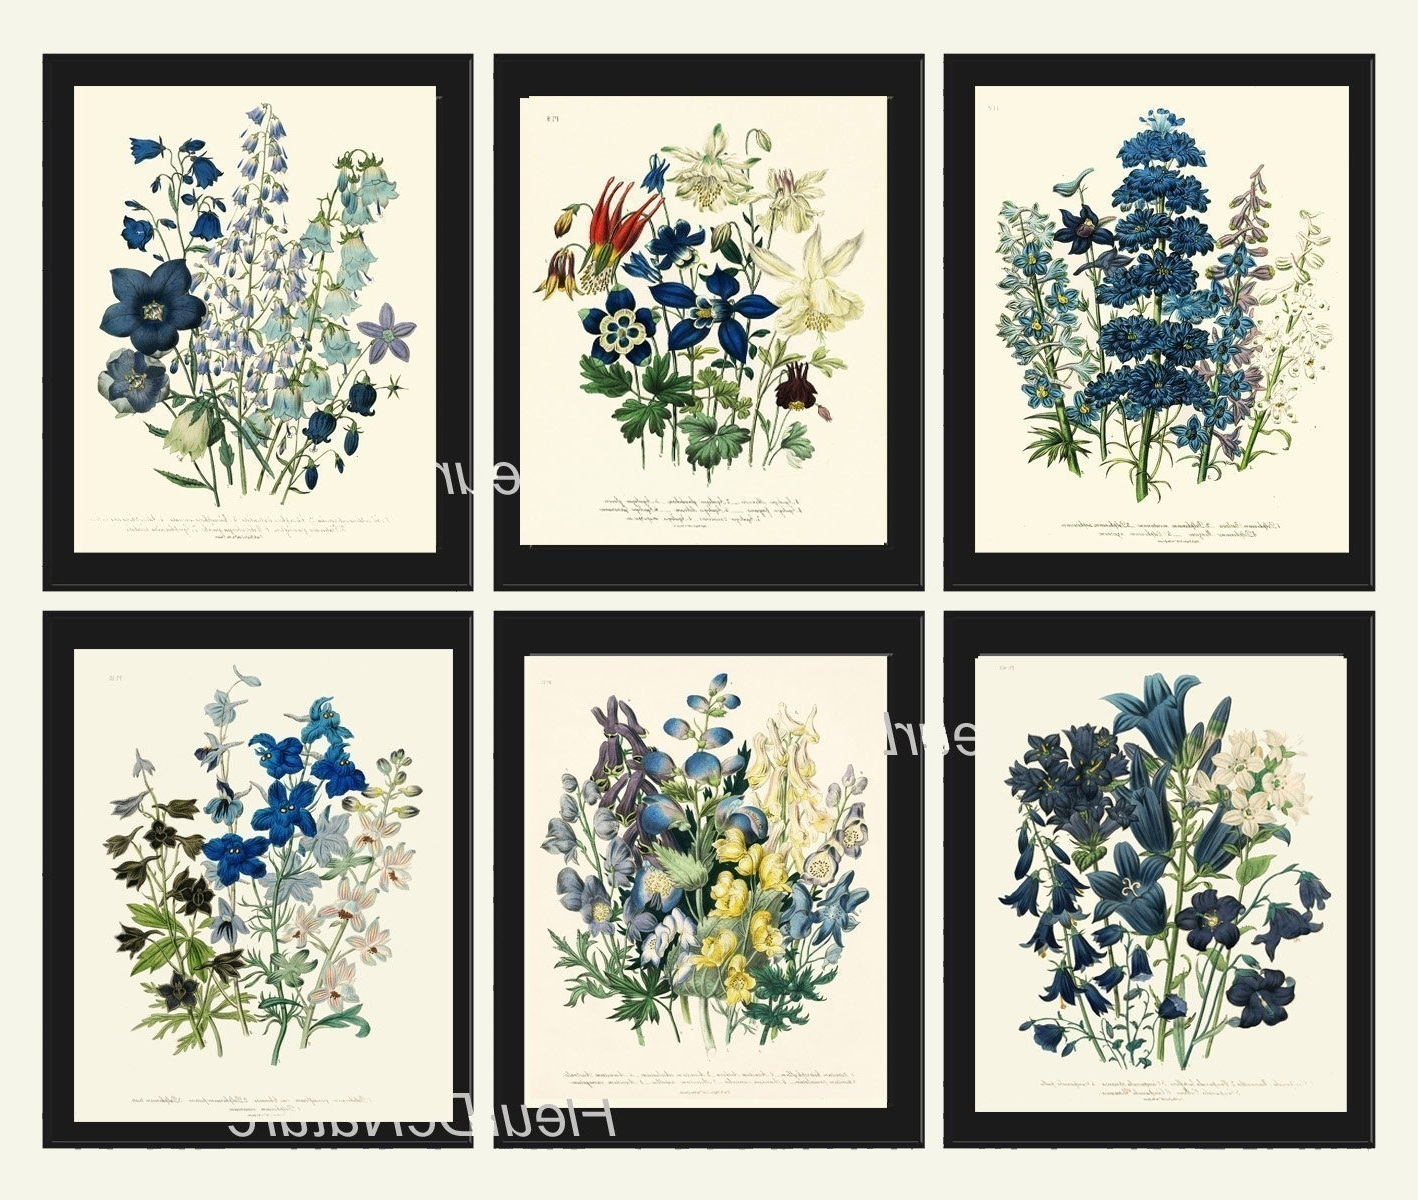 Amazon: Botanical Print Set Of 6 Prints Unframed Antique Blue Regarding Most Up To Date Wall Art Print Sets (View 2 of 15)